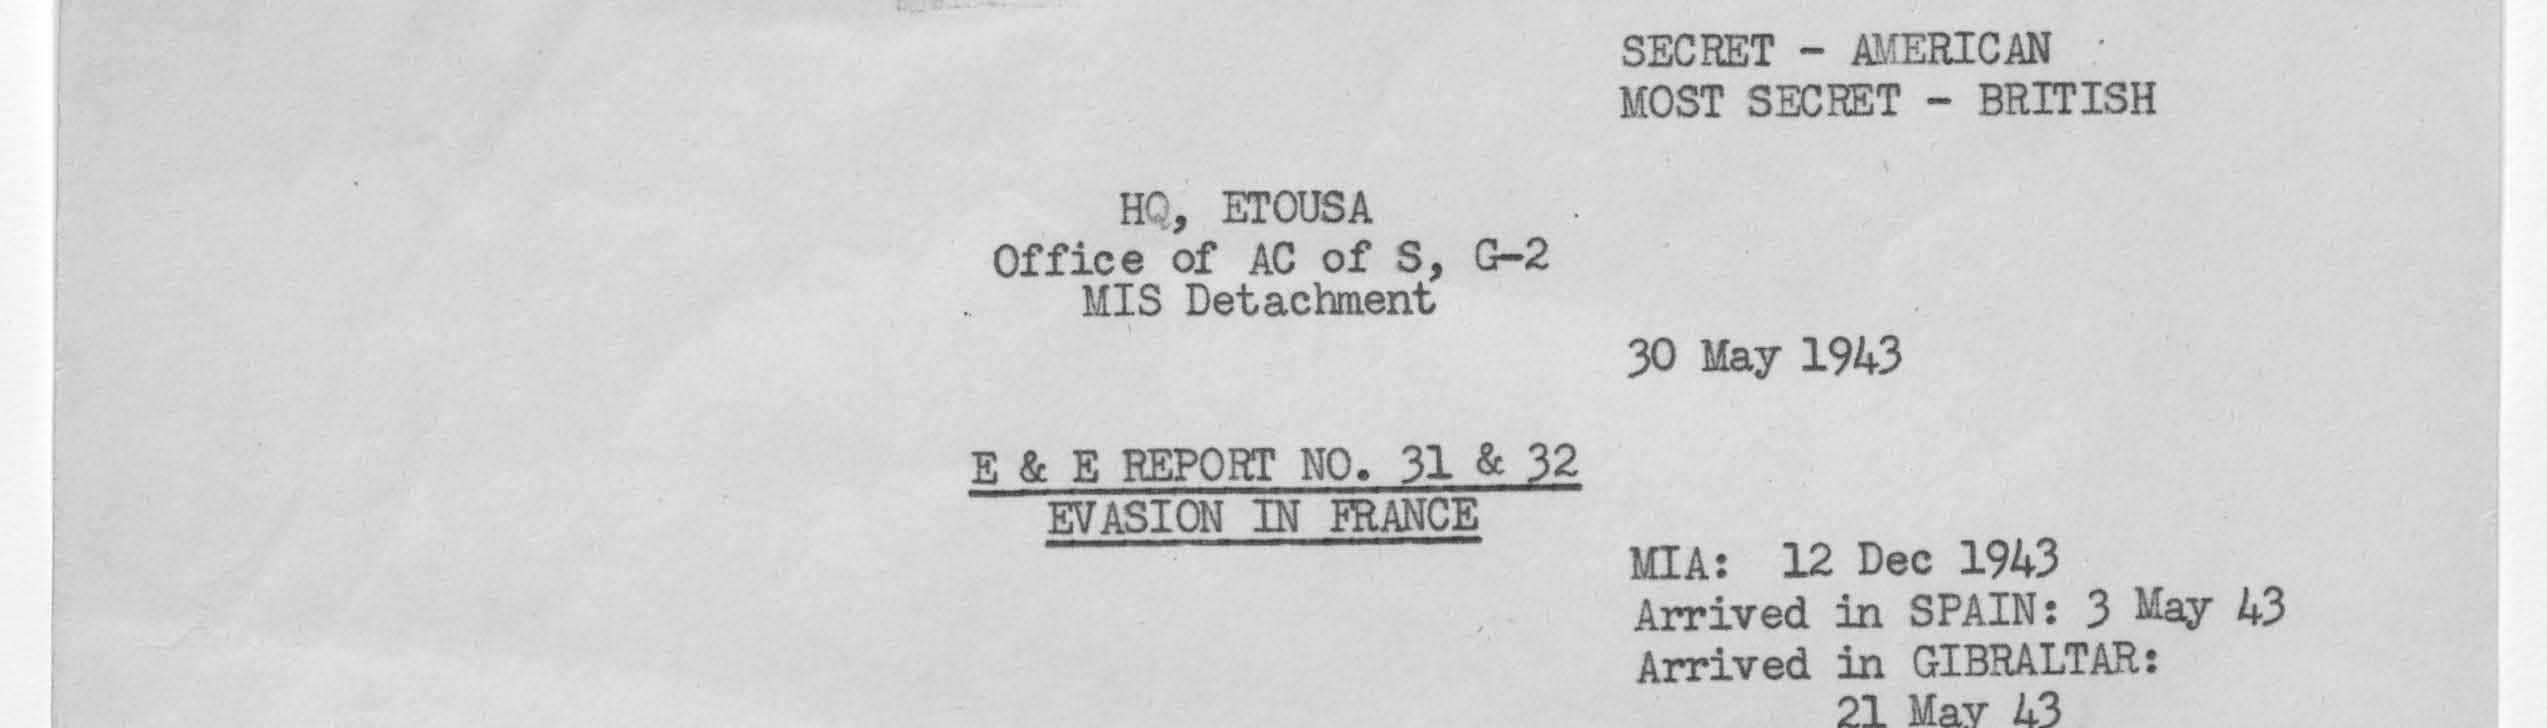 Records of Headquarters, European Theater of Operations, United States Army (World War II)